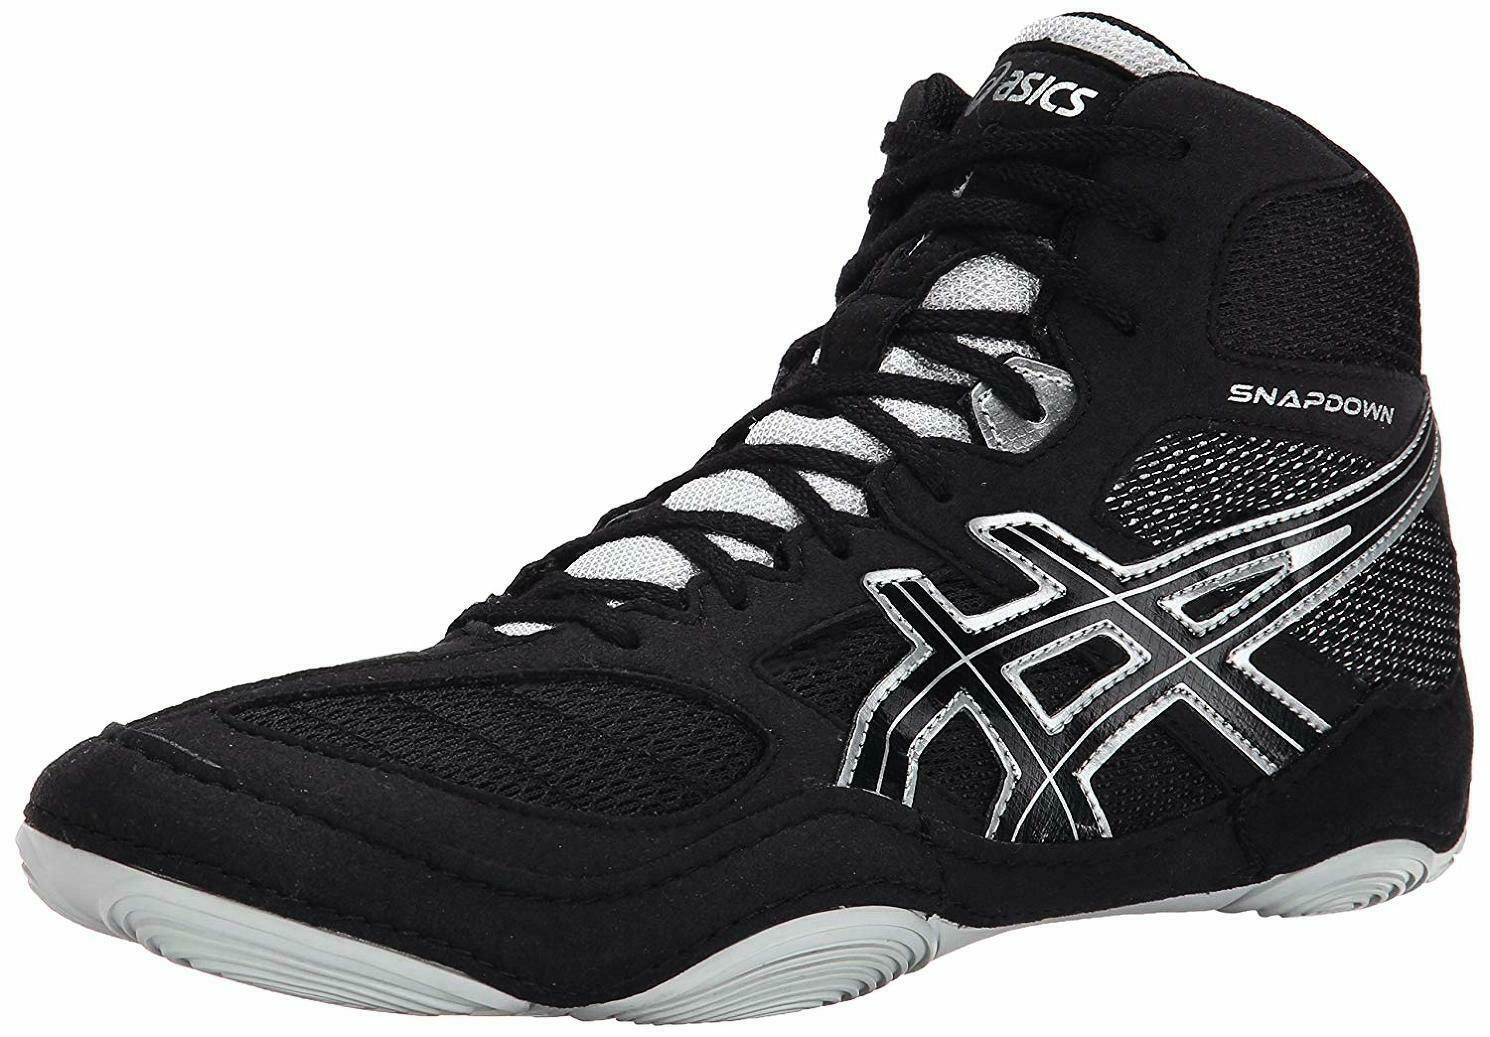 b4d178596 ASICS Men s Snapdown Wrestling shoes nyqnfz1317-Athletic Shoes ...